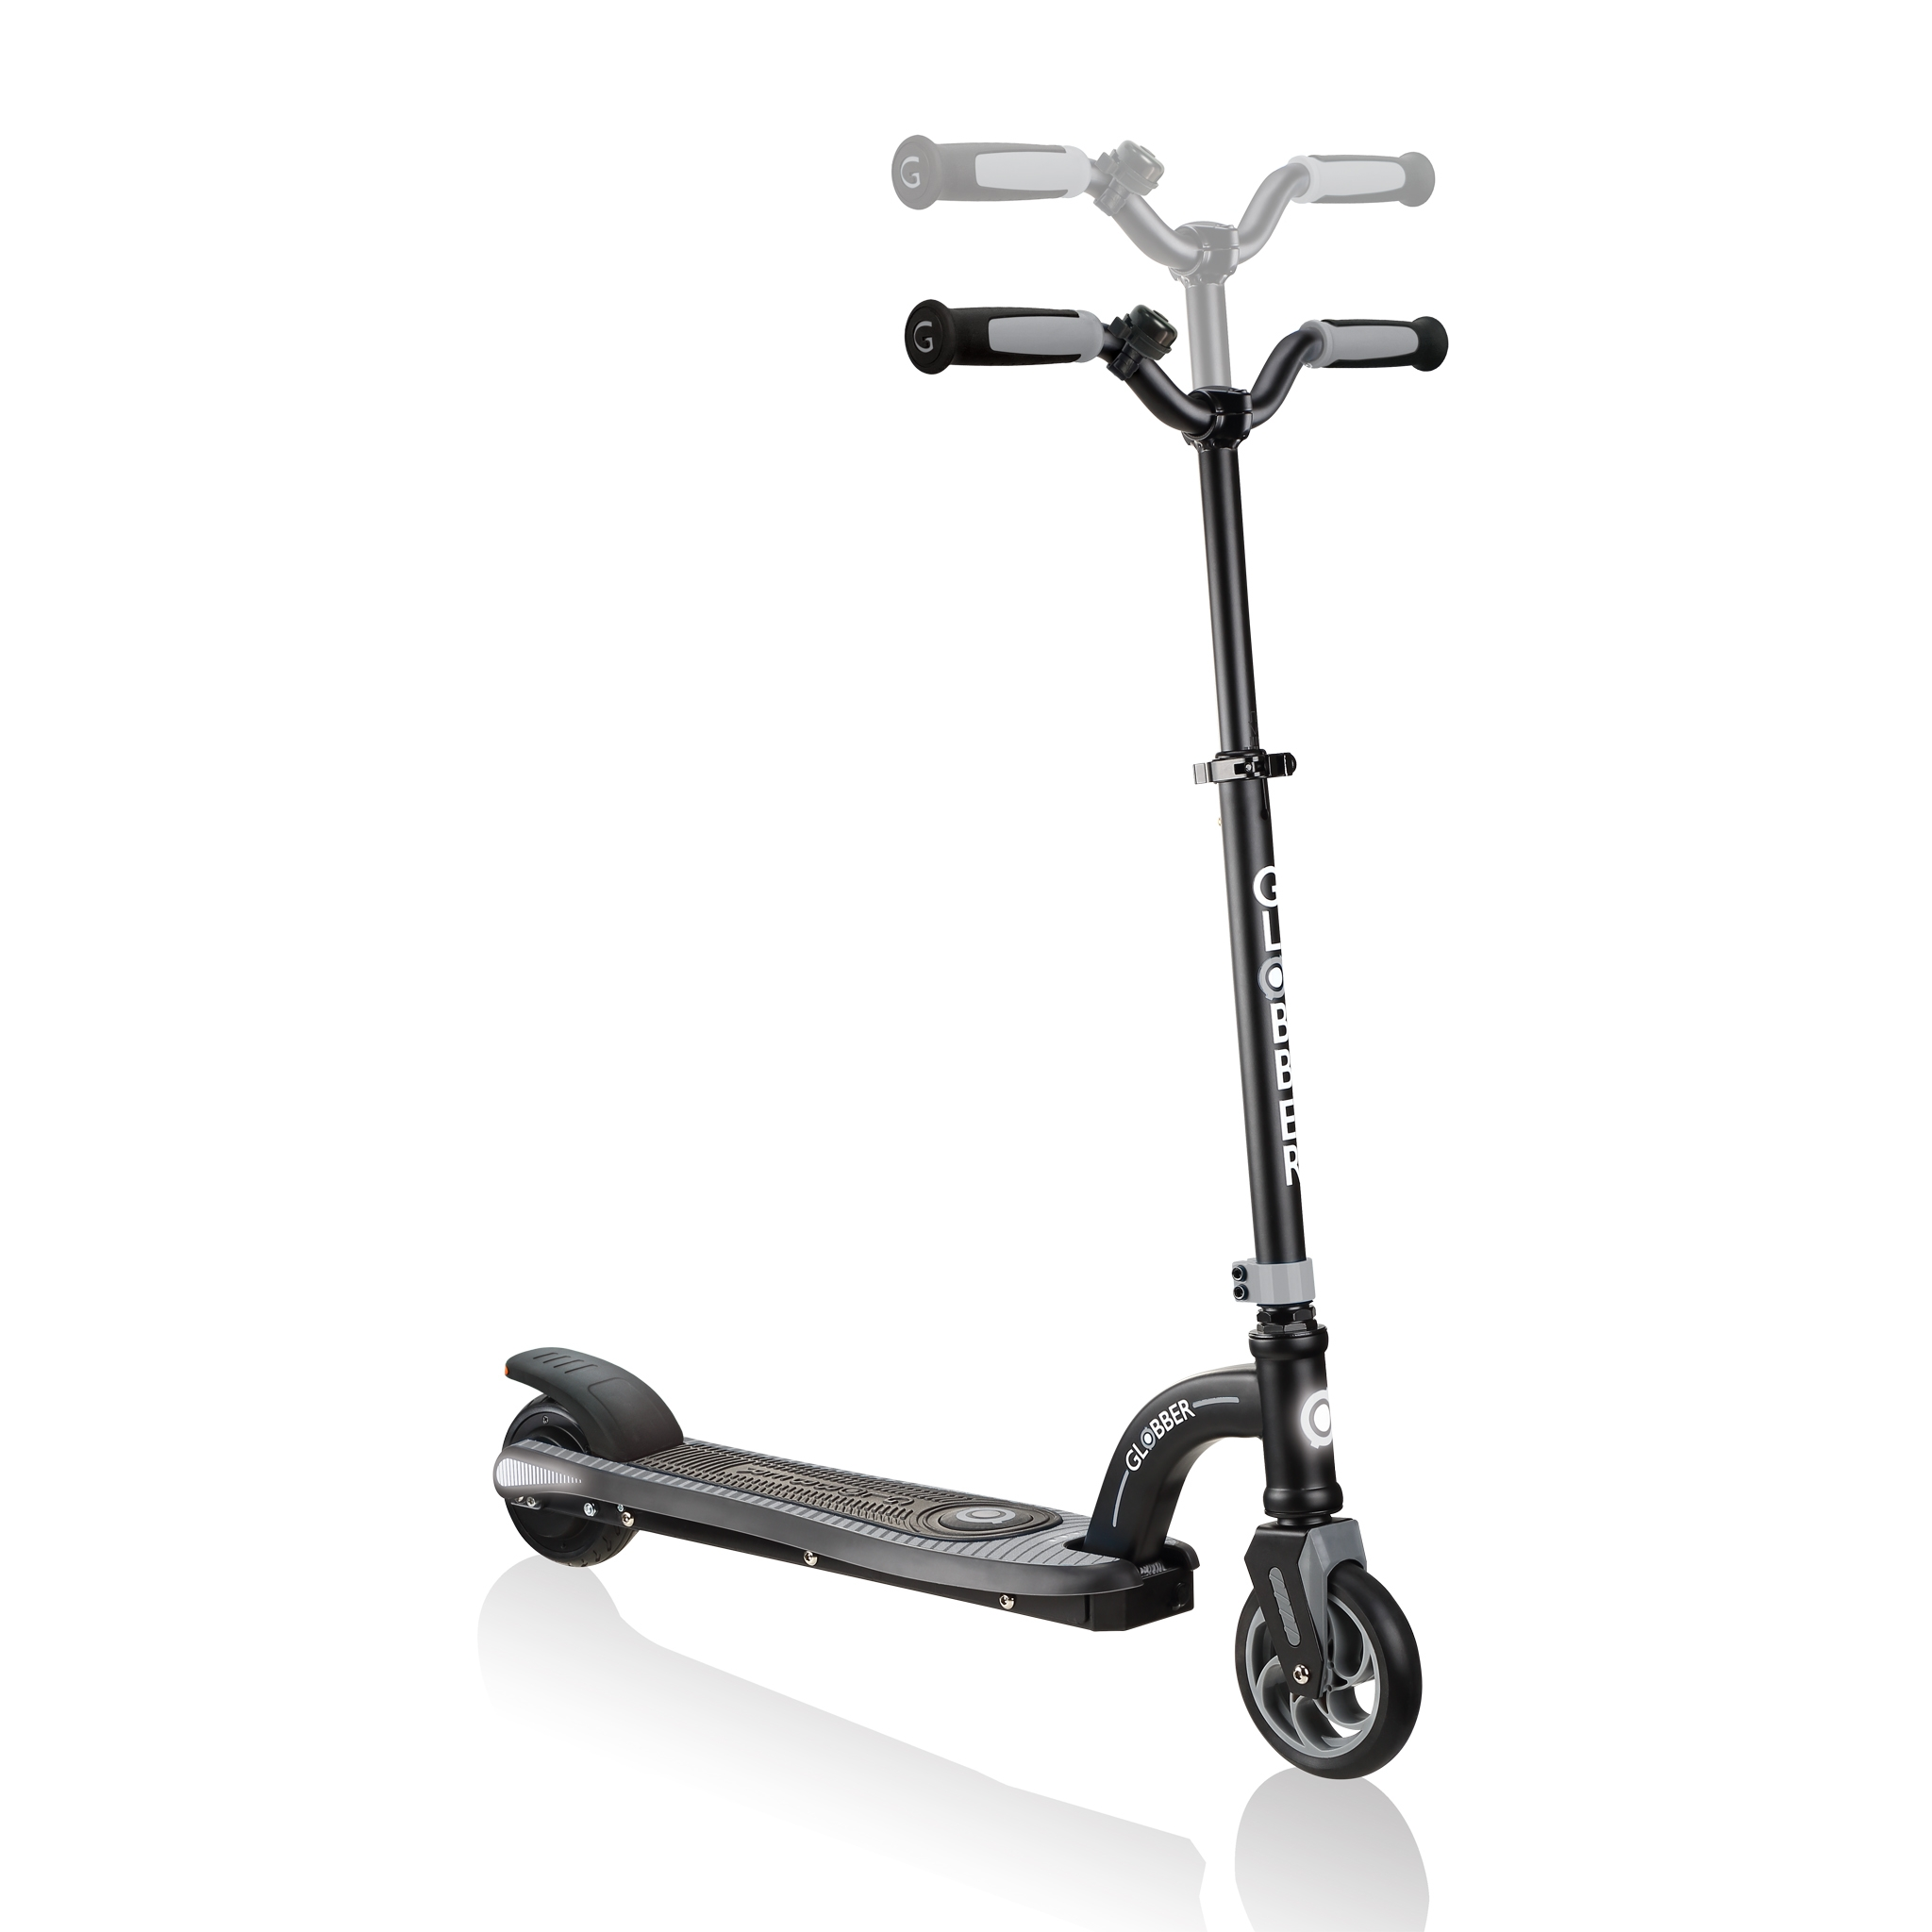 Globber-ONE-K-E-MOTION-10-best-electric-scooter-for-kids-adjustable-e-scooter 3